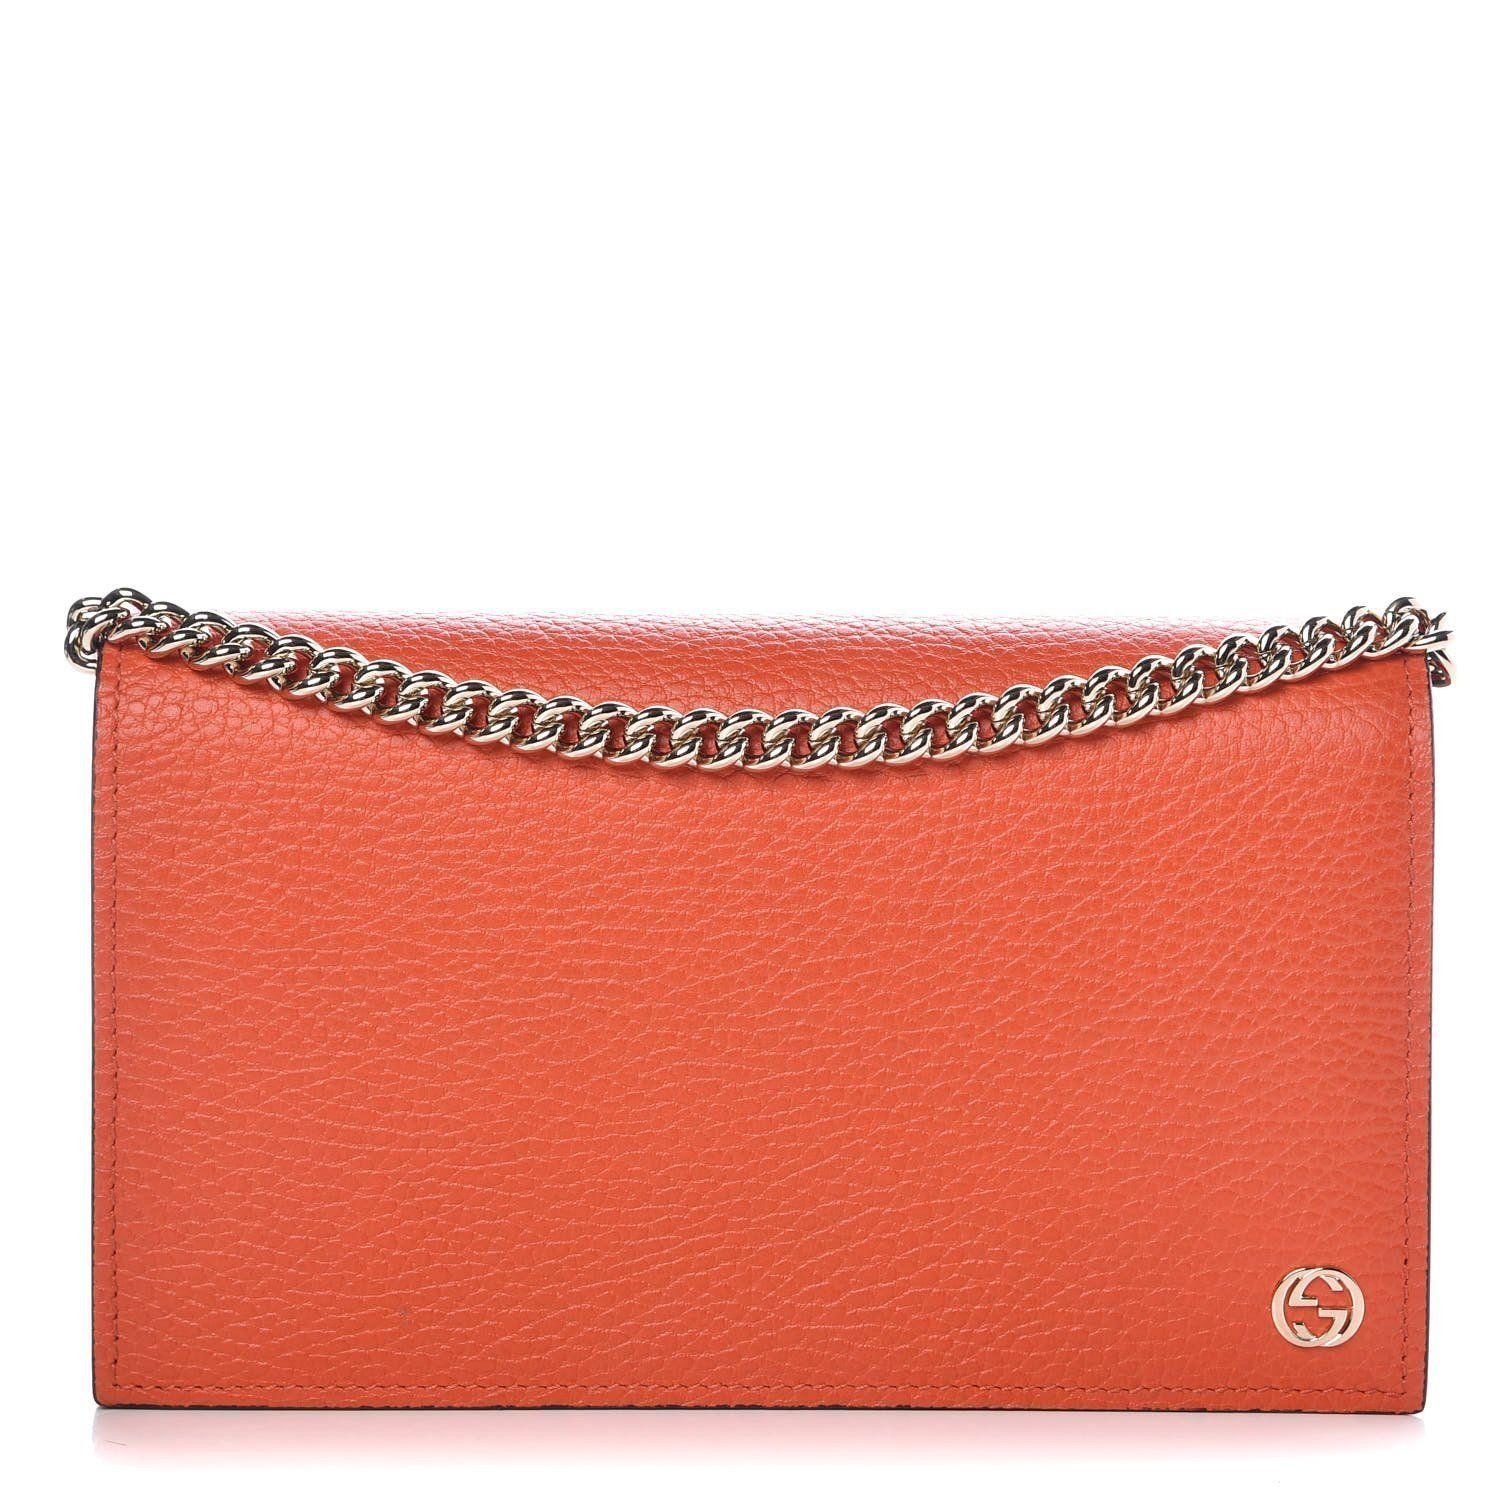 Gucci Dollar Orange Pebbled Leather Wallet Chain Purse Handbag 466506